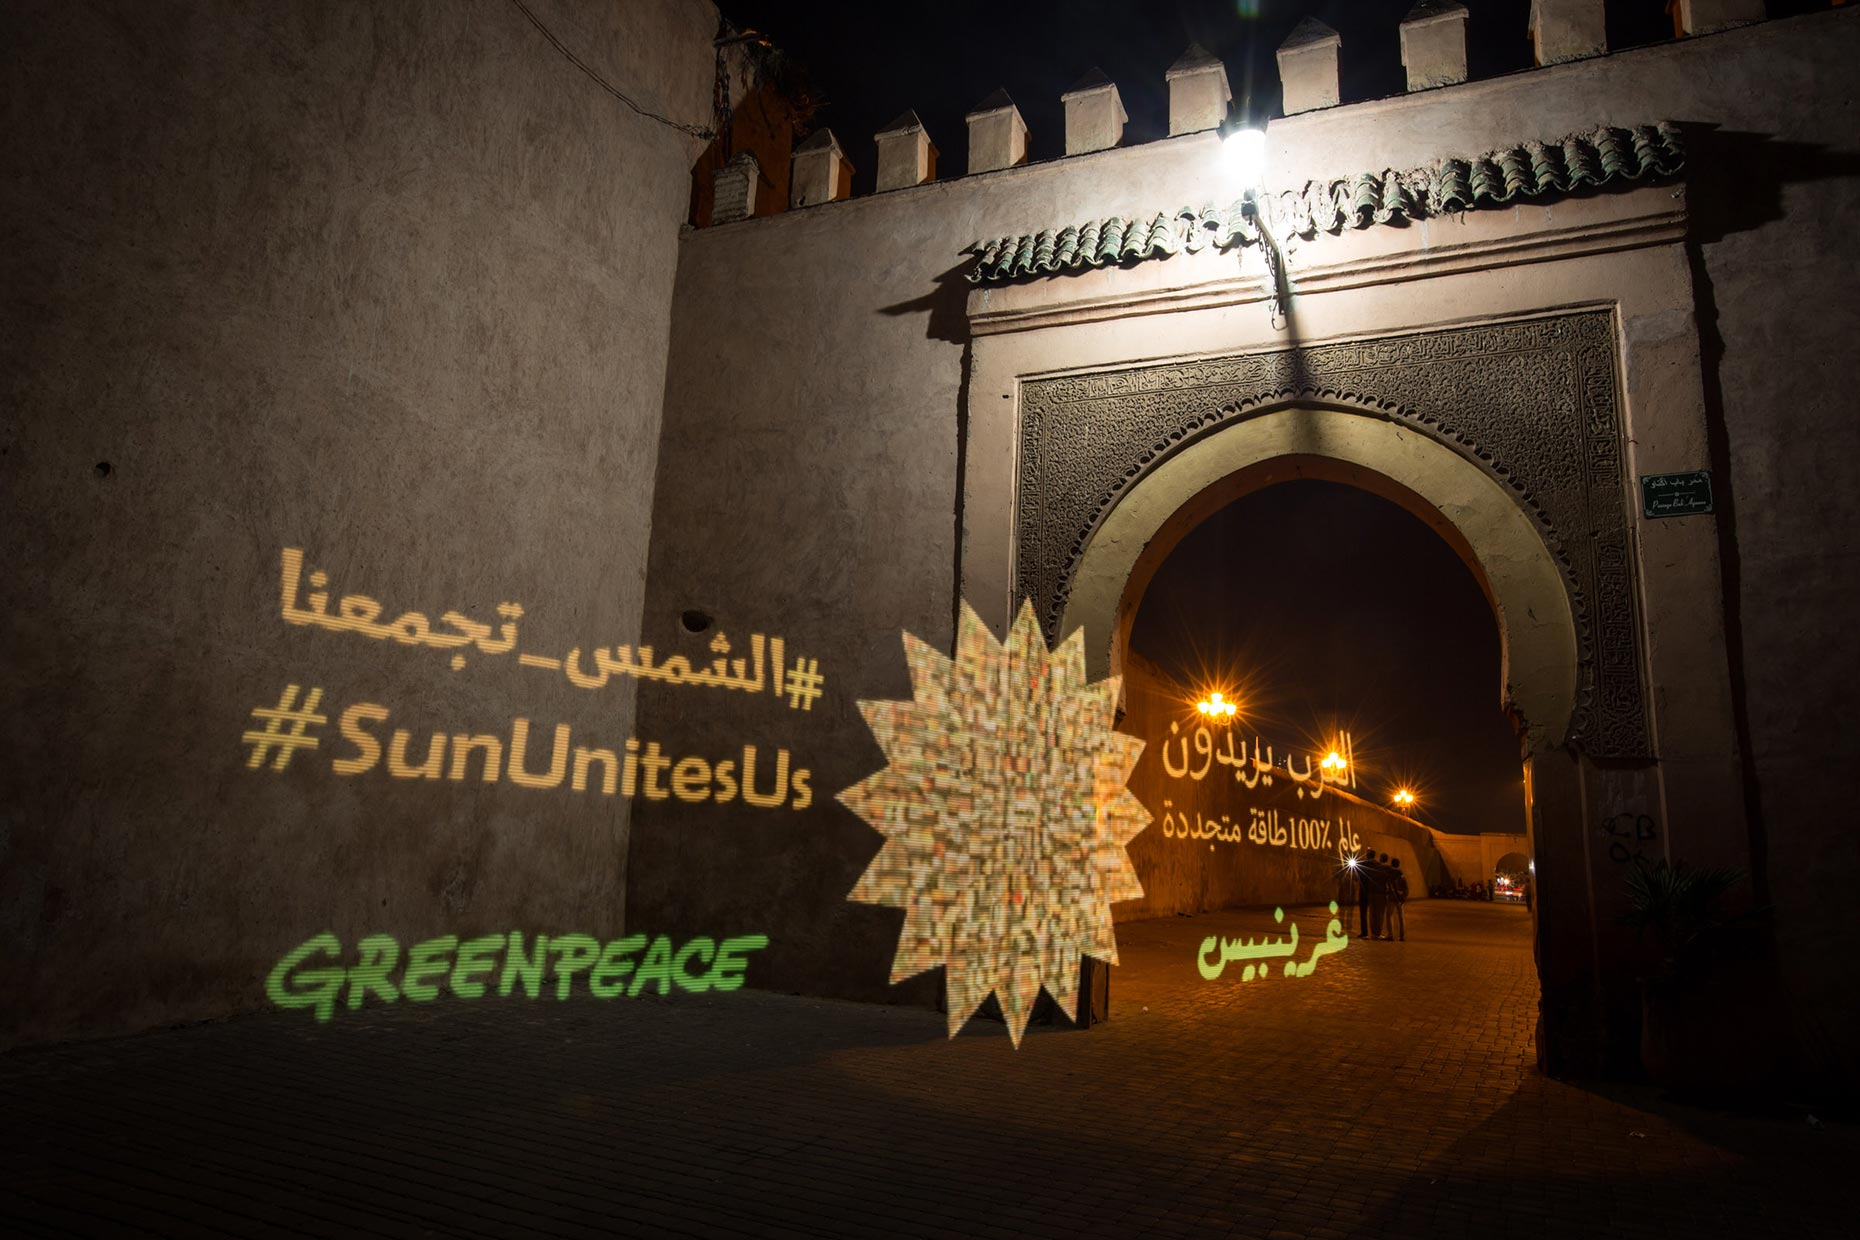 Greenpeace action in Morocco, by Scotland Greenpeace photographer